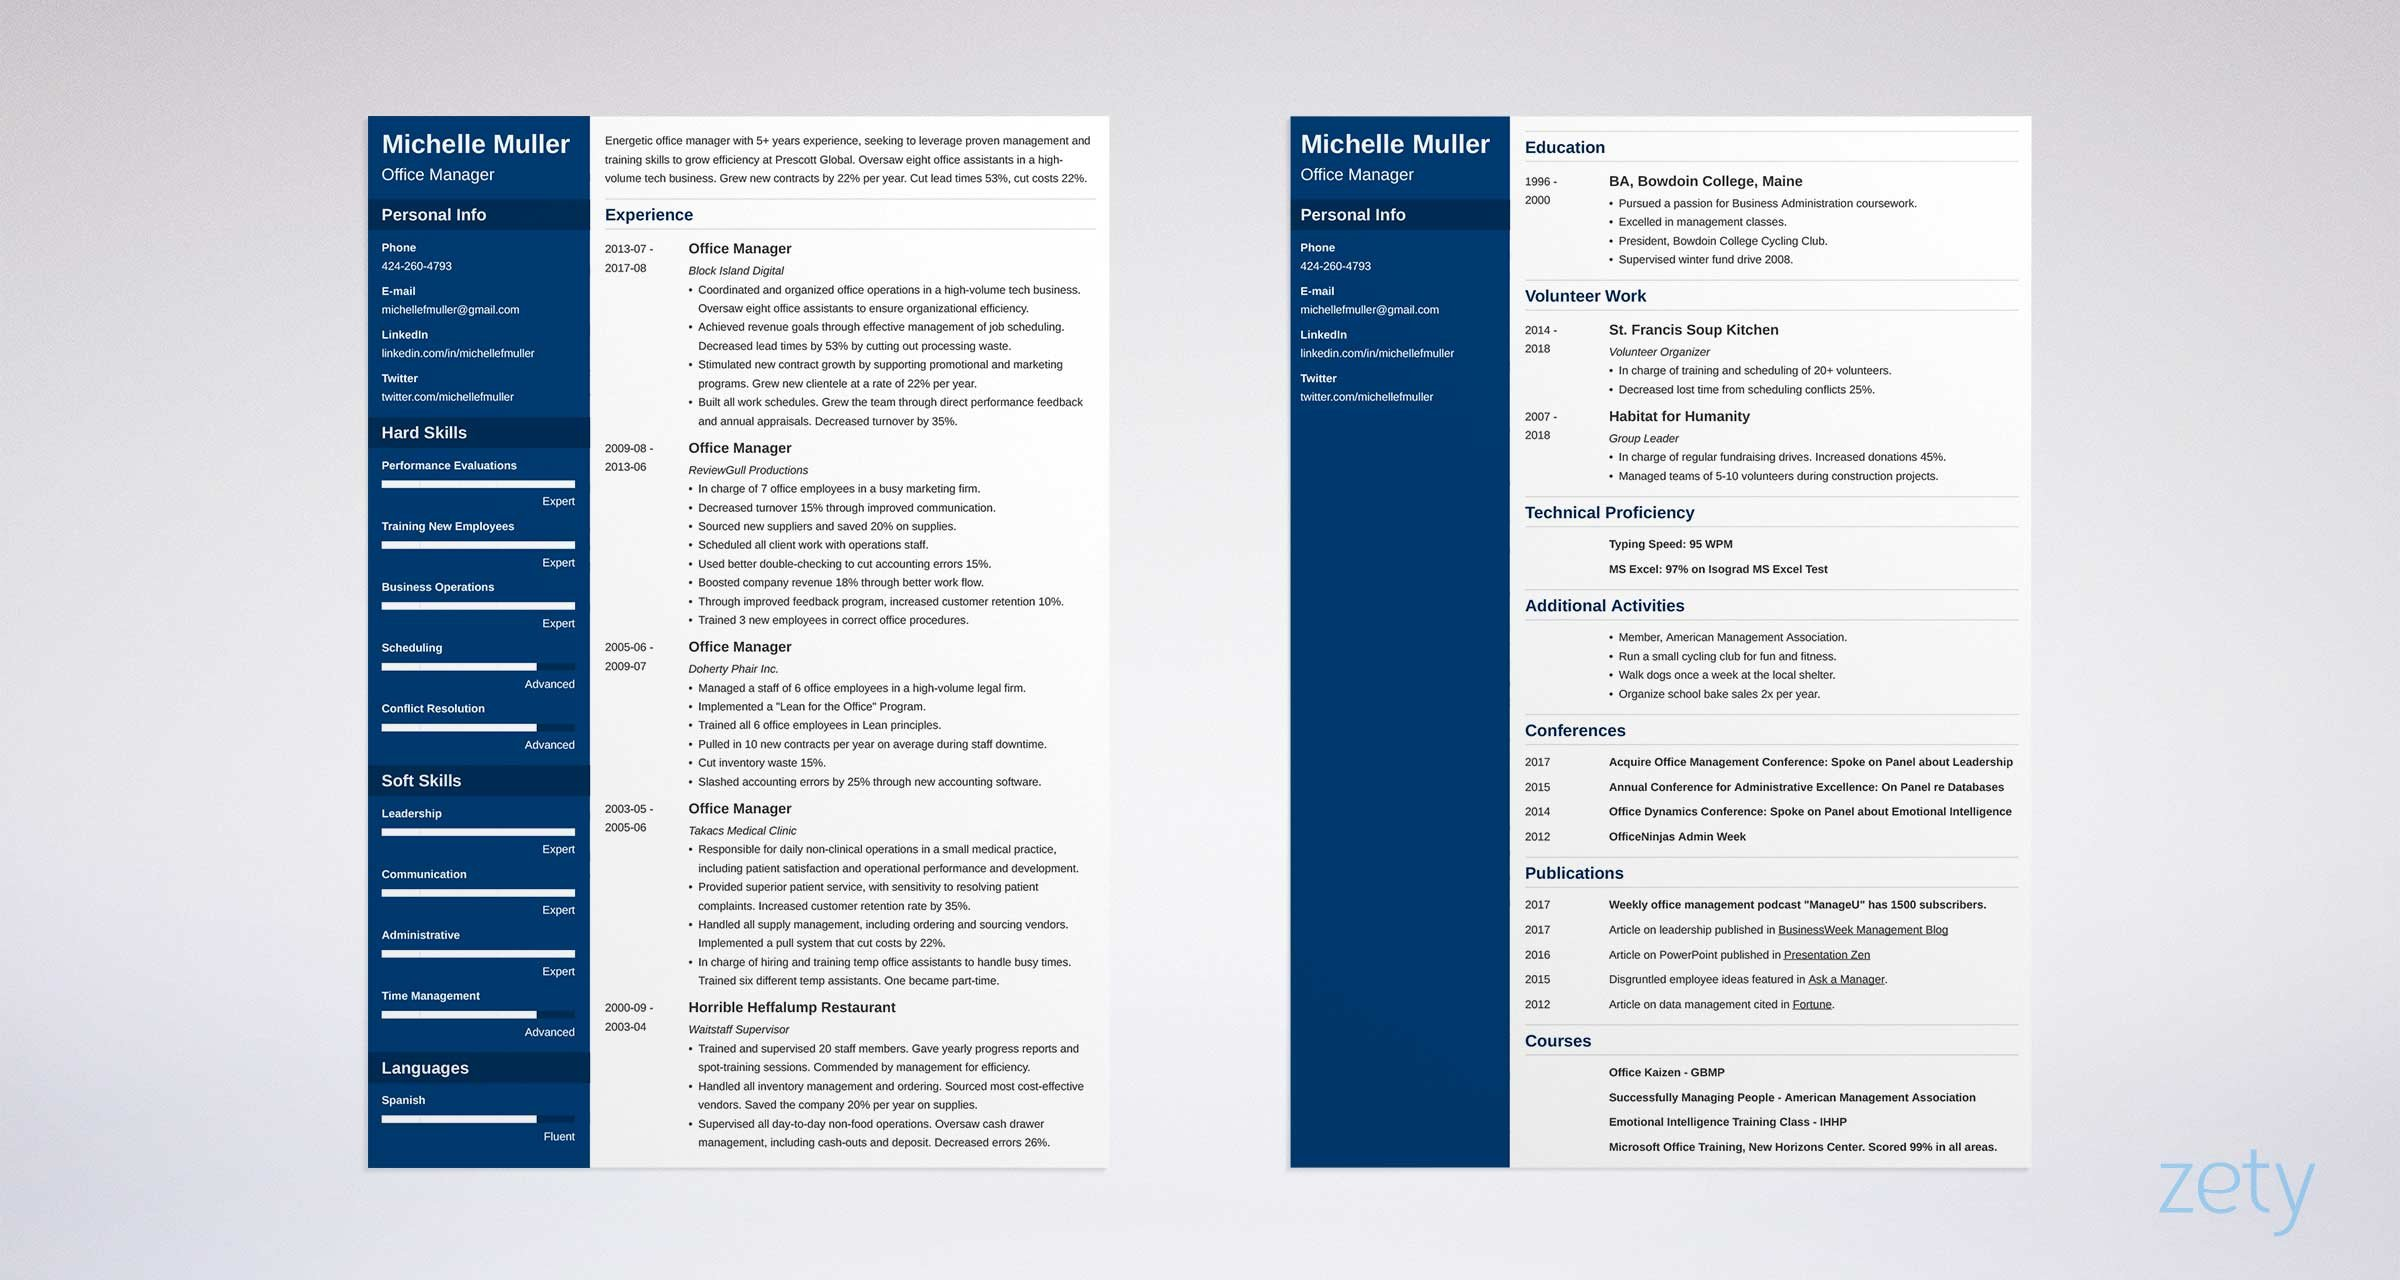 resume it crush your chances format tips one vs two samples for computer science Resume One Page Resume Vs Two Page